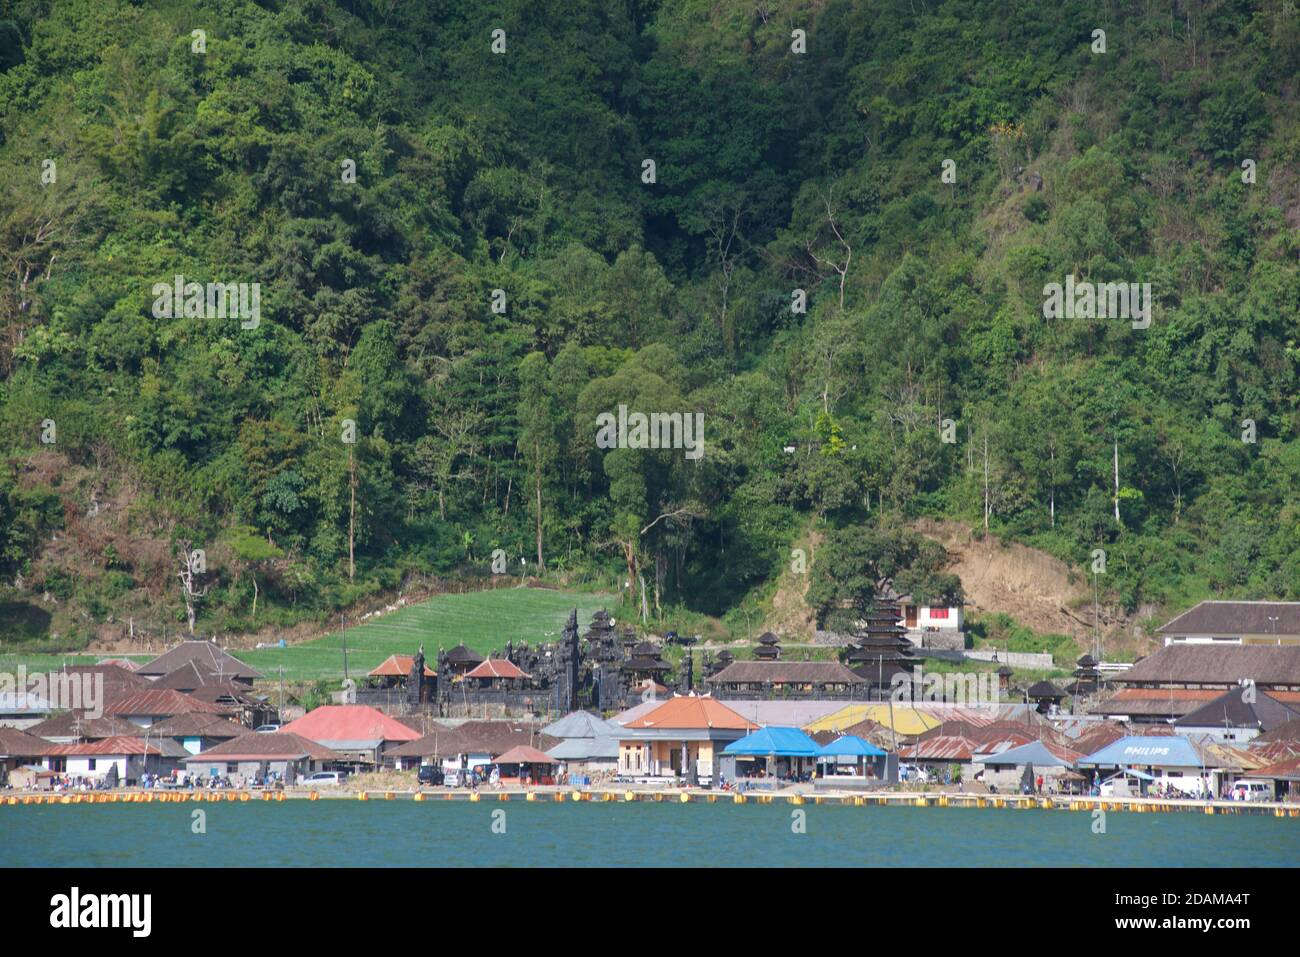 Bali Aga Village High Resolution Stock Photography And Images Alamy